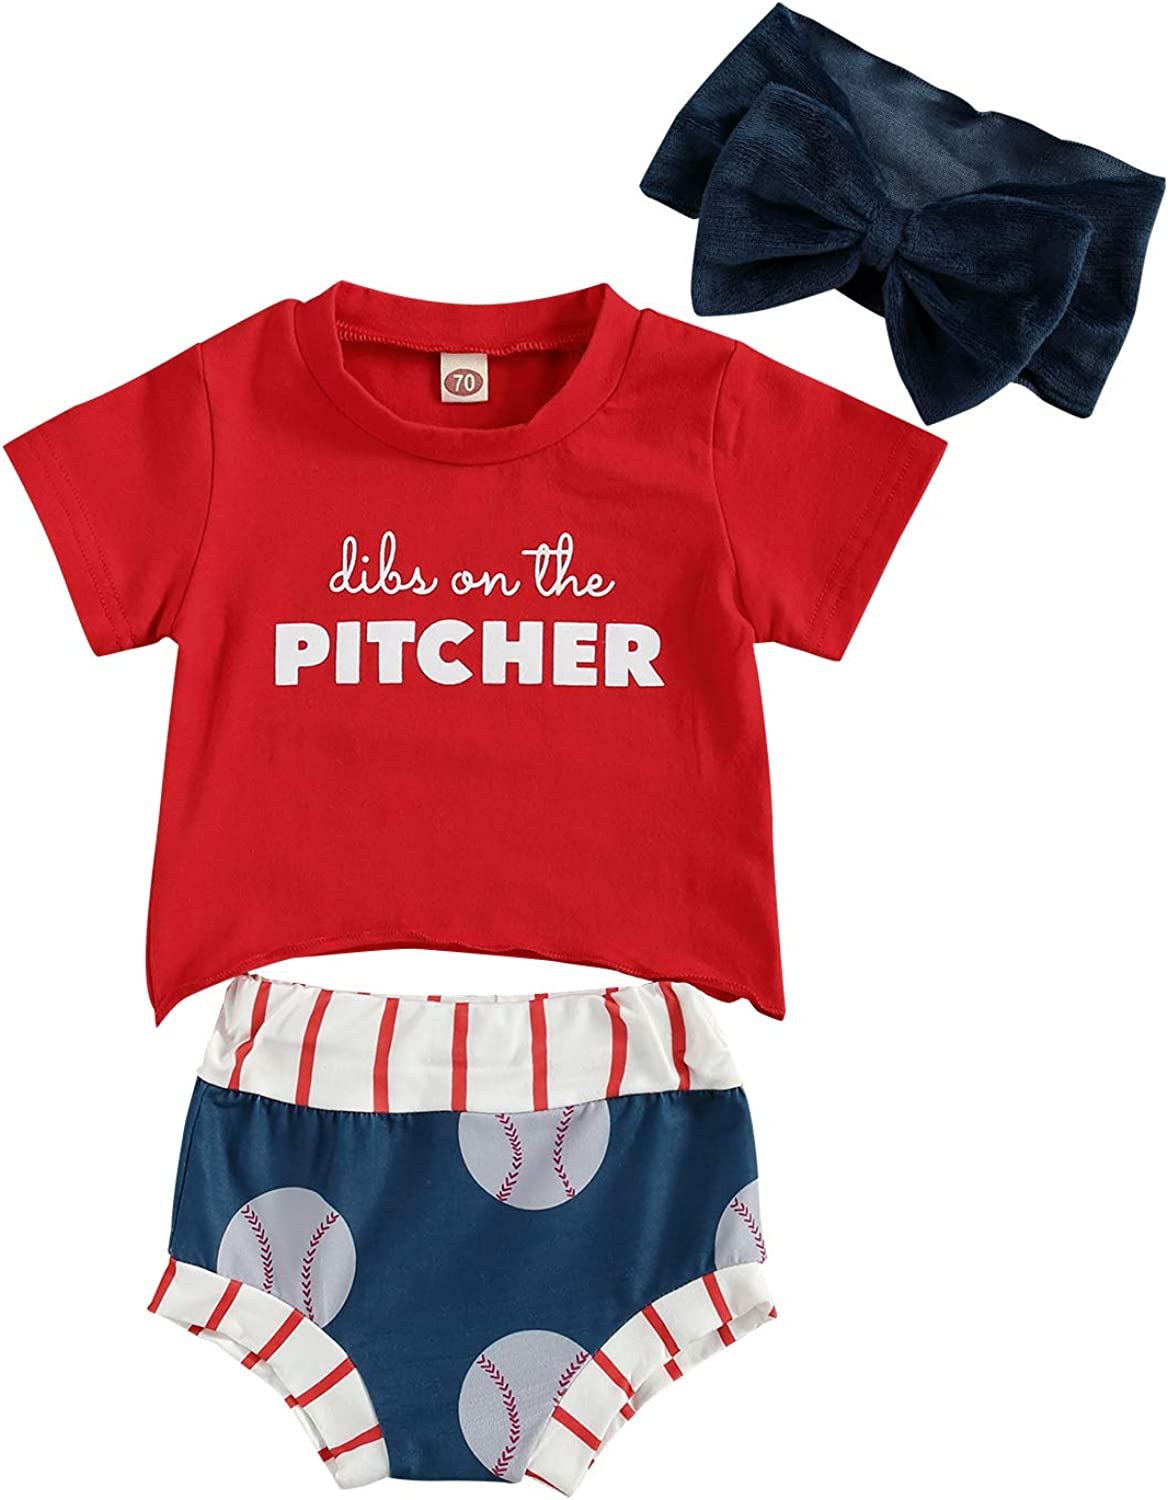 Infant Baby Girl Summer Outfits Short Sleeve Letter T-Shirt Top Bloomers with Headband 3Pcs Toddlers Clothes Set